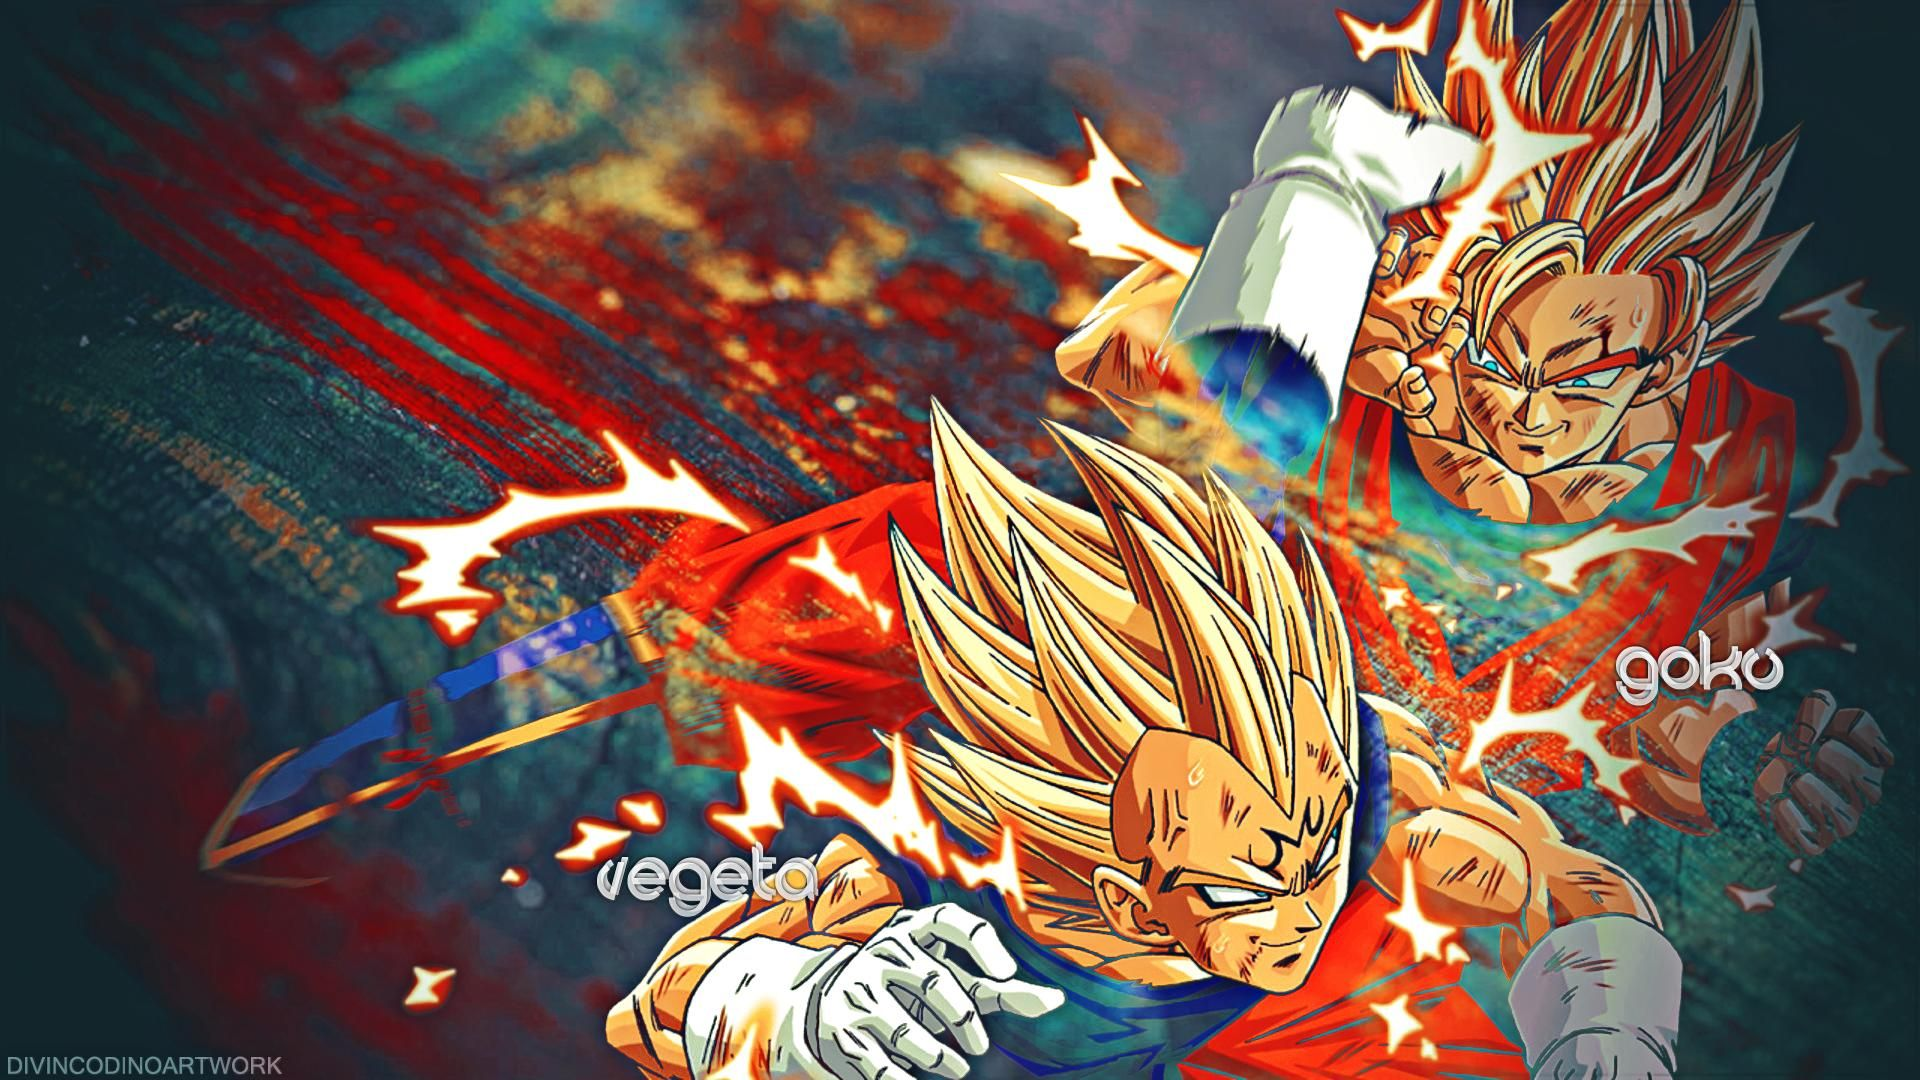 Dragon Ball Z Hd Wallpapers Wallpaper Cave Med Bilder